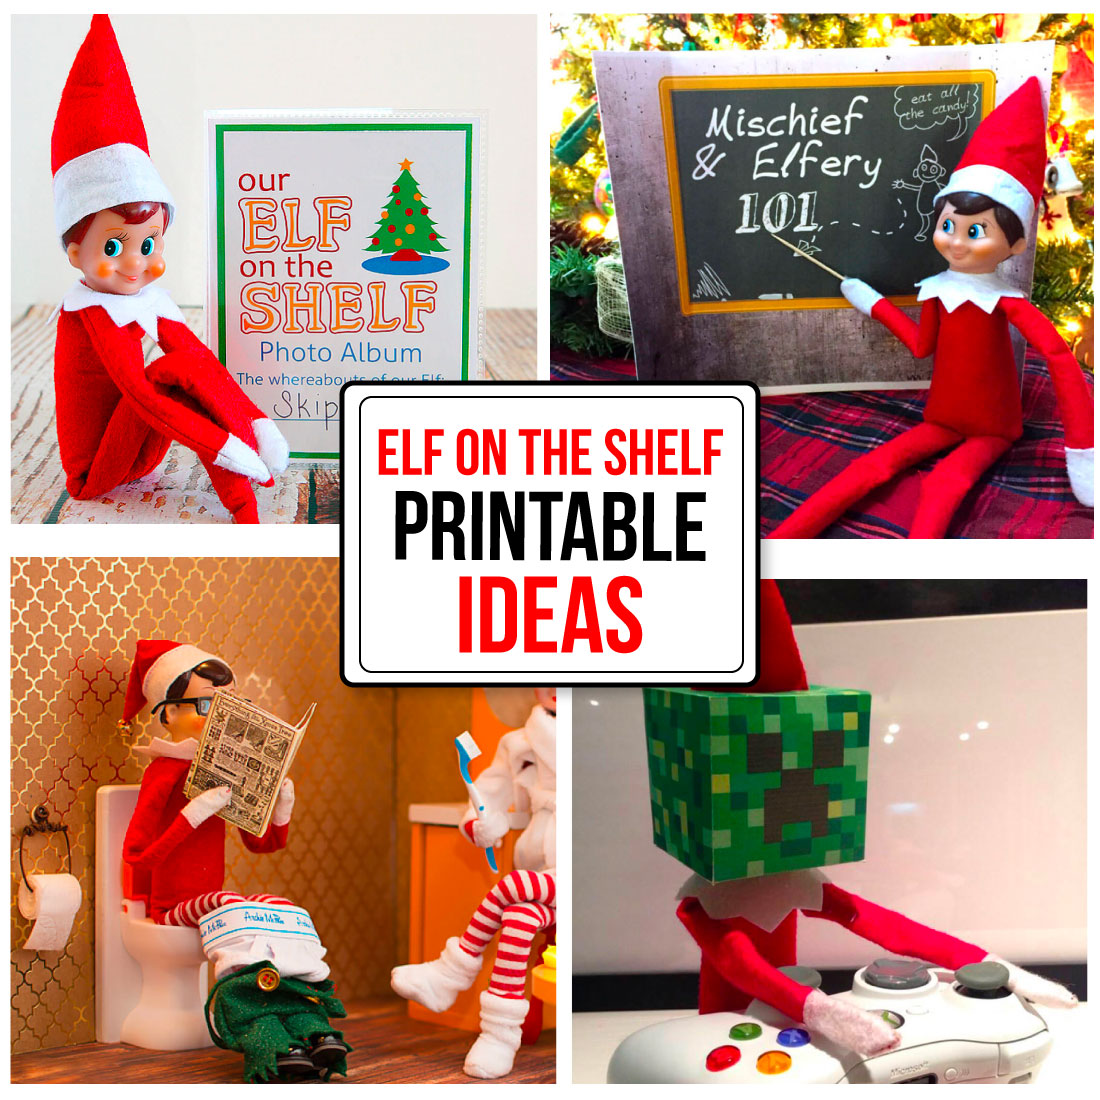 Printable Elf on the Shelf Ideas - fun ideas to make Elf on the Shelf a little more fun. www.thirtyhandmadedays.com